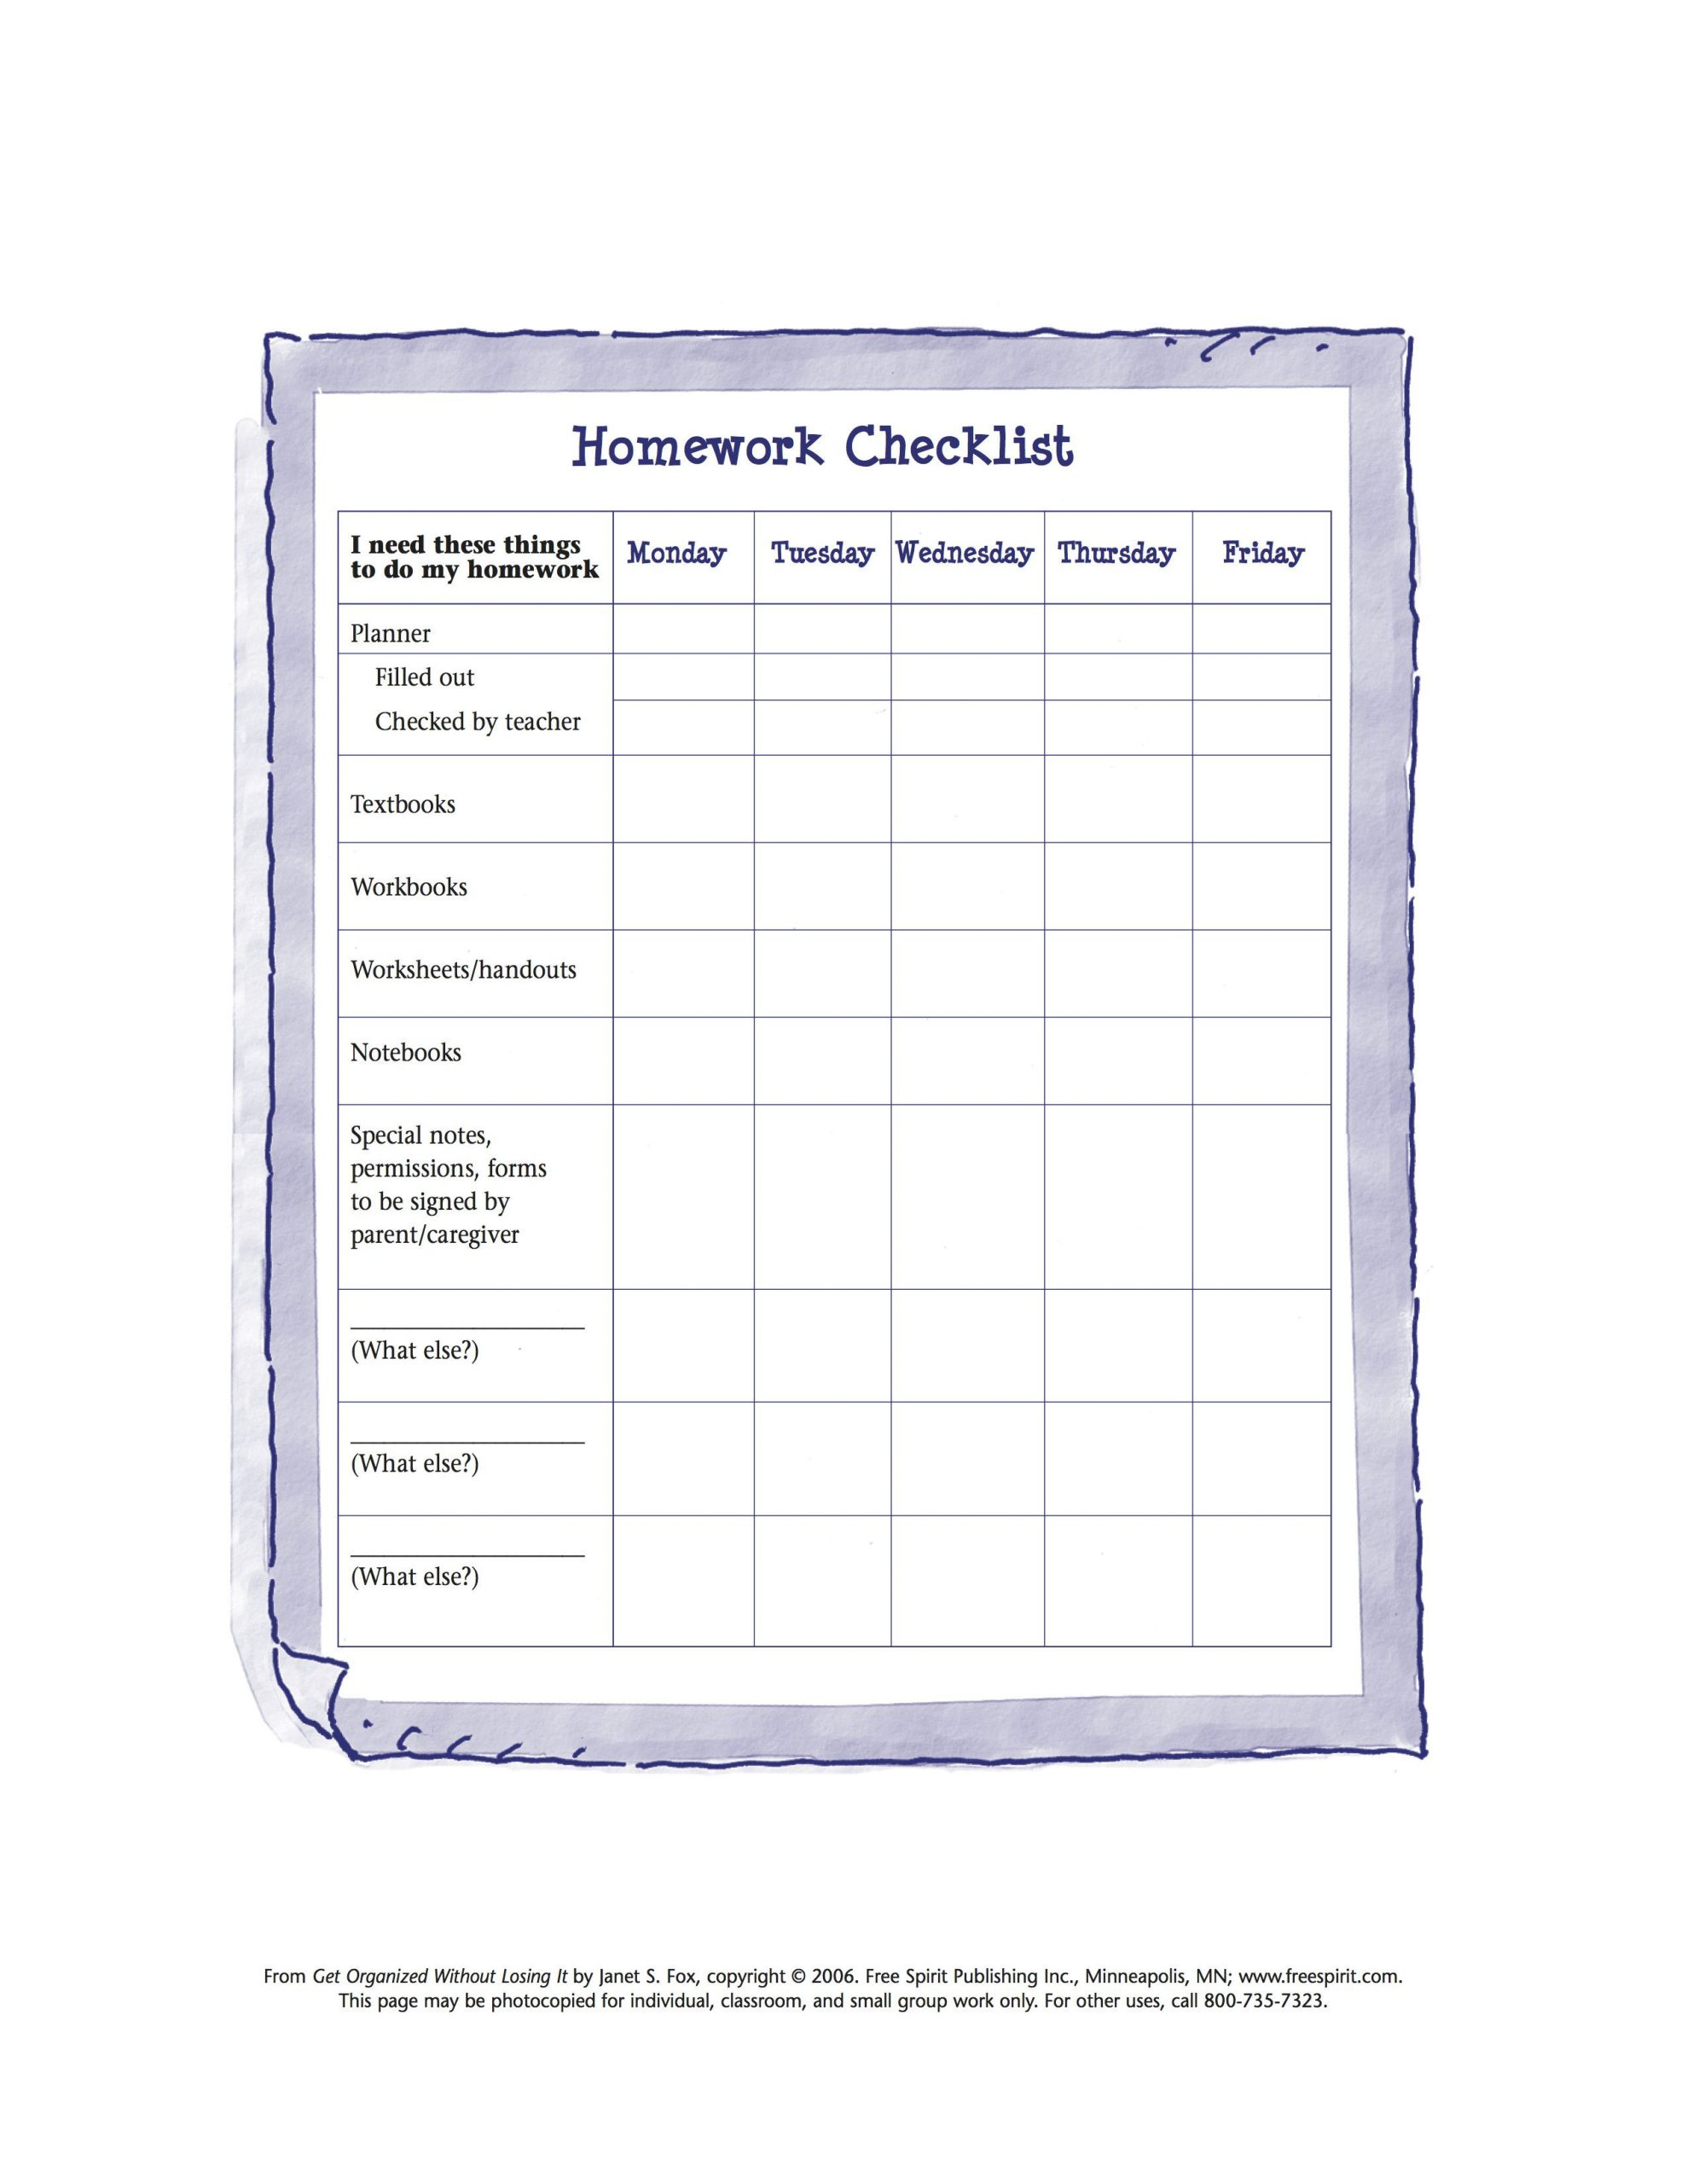 Levels Of organization Worksheet Free Printable Worksheet to Help Kids organize tools Needed